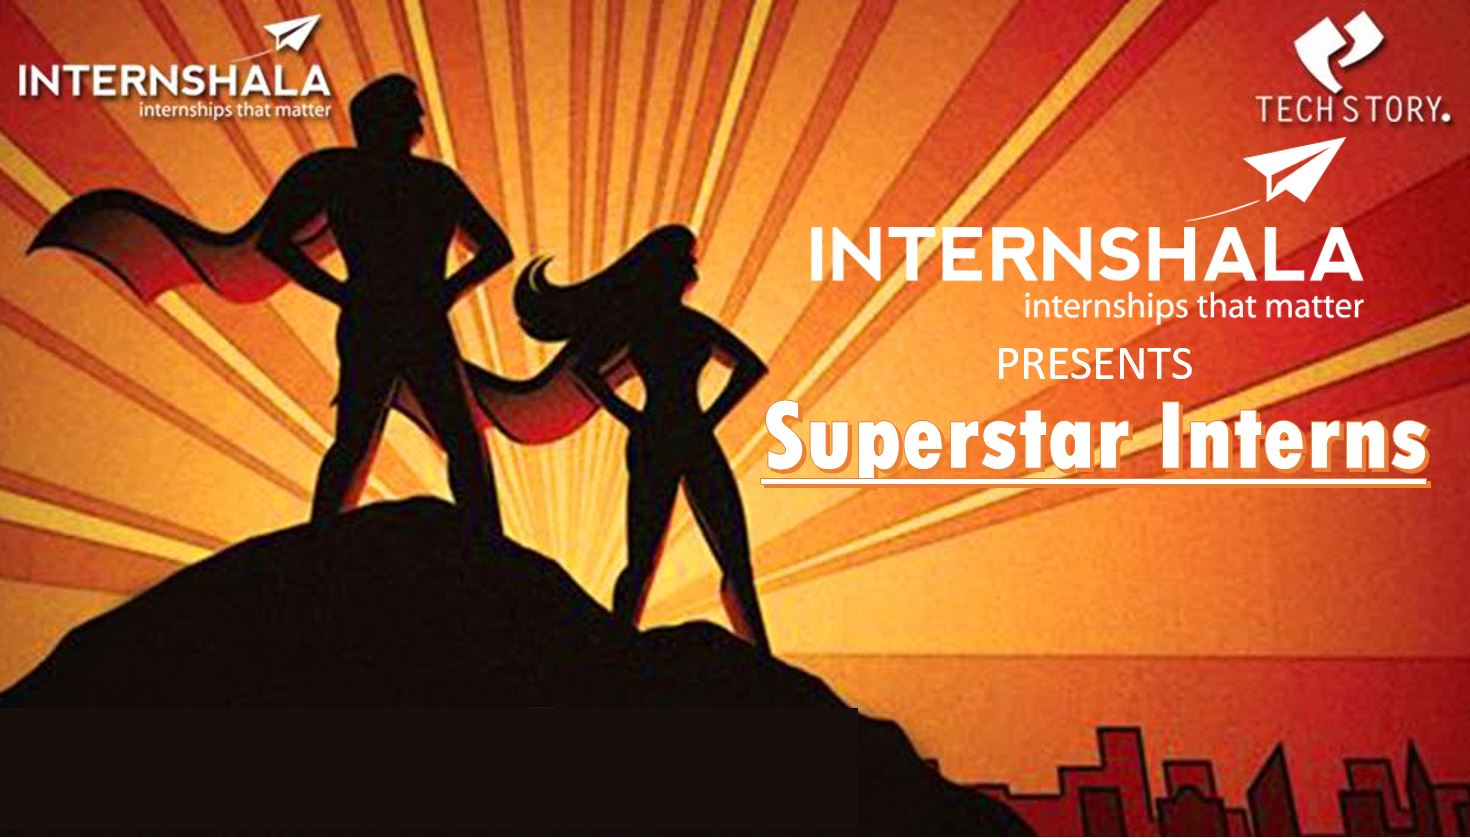 superstar interns quote